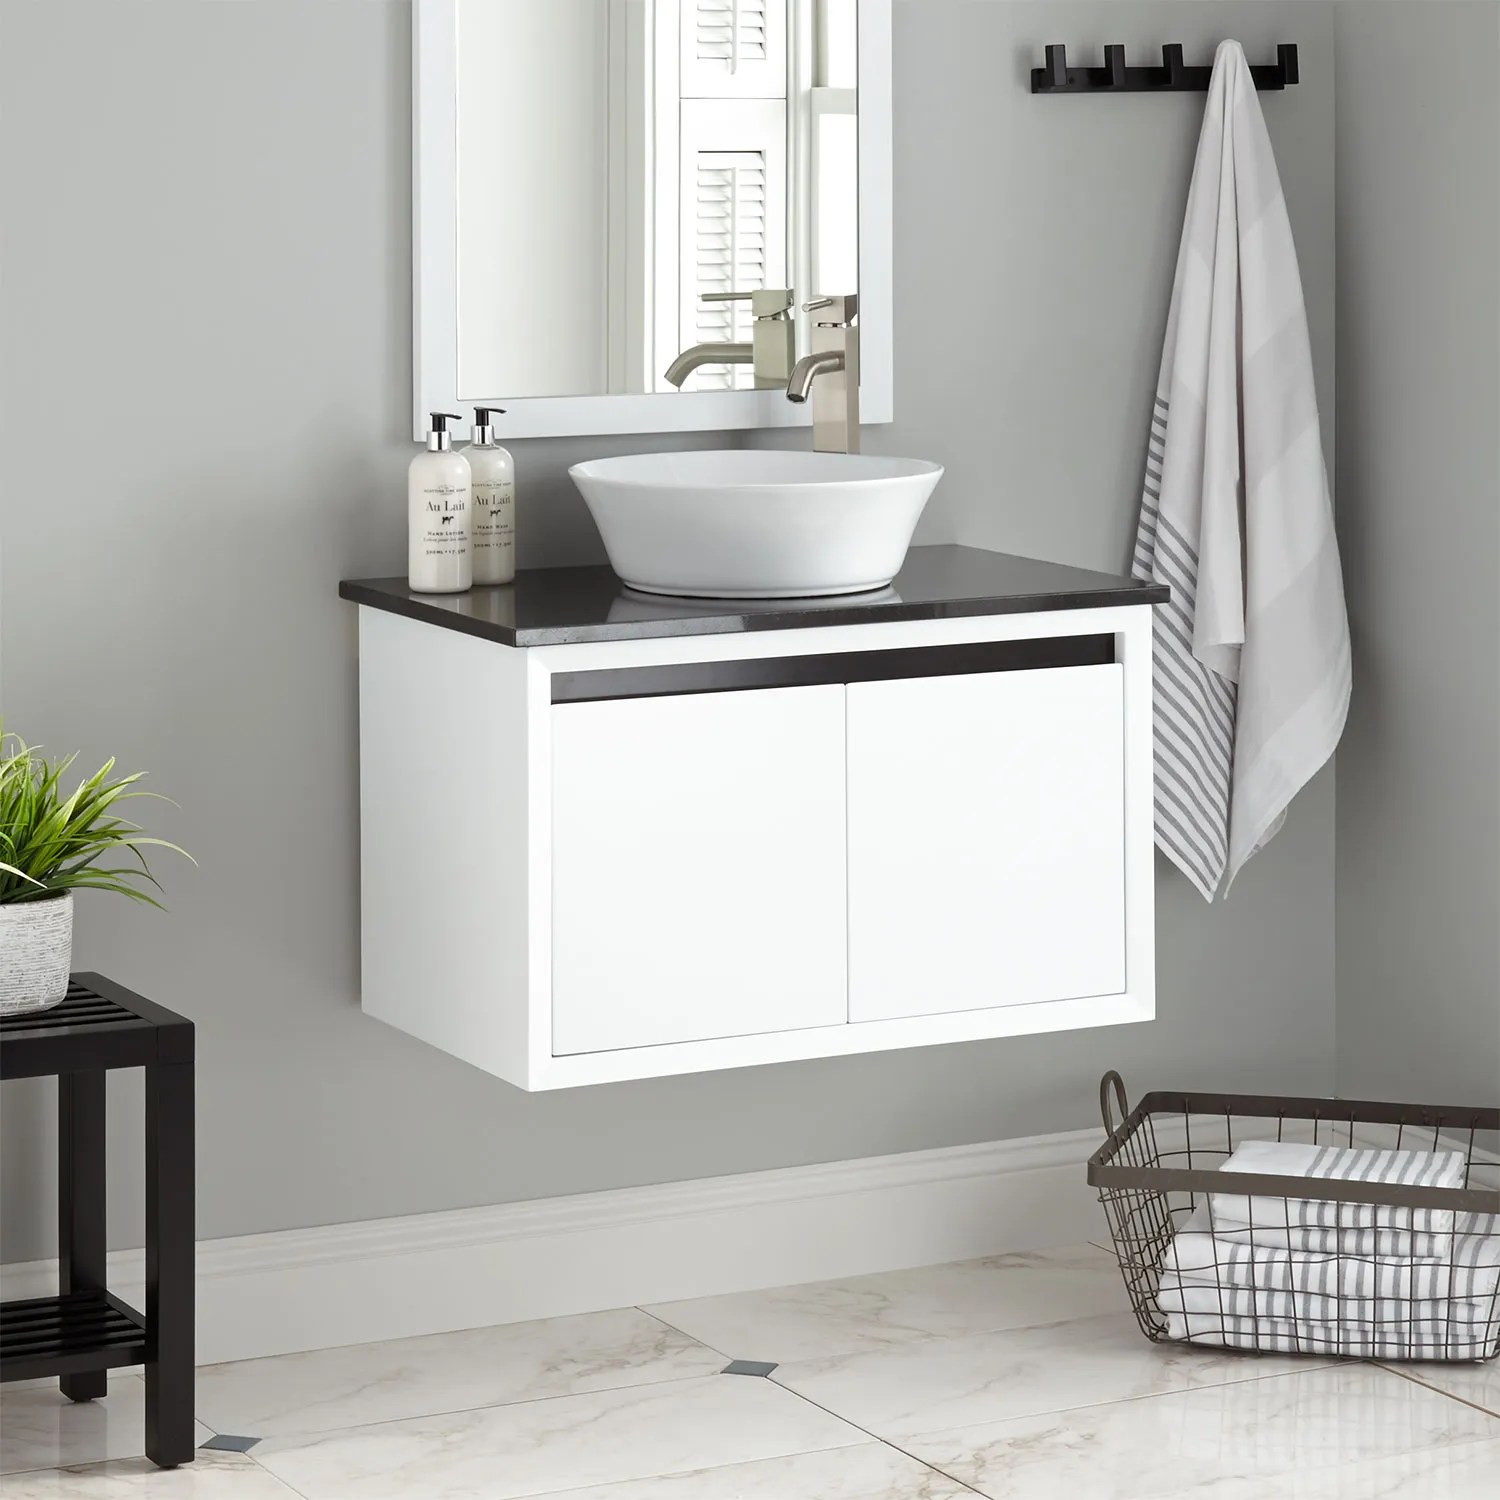 30 Floating Bathroom Vanity Floating Bathroom Vanity Signature Hardware